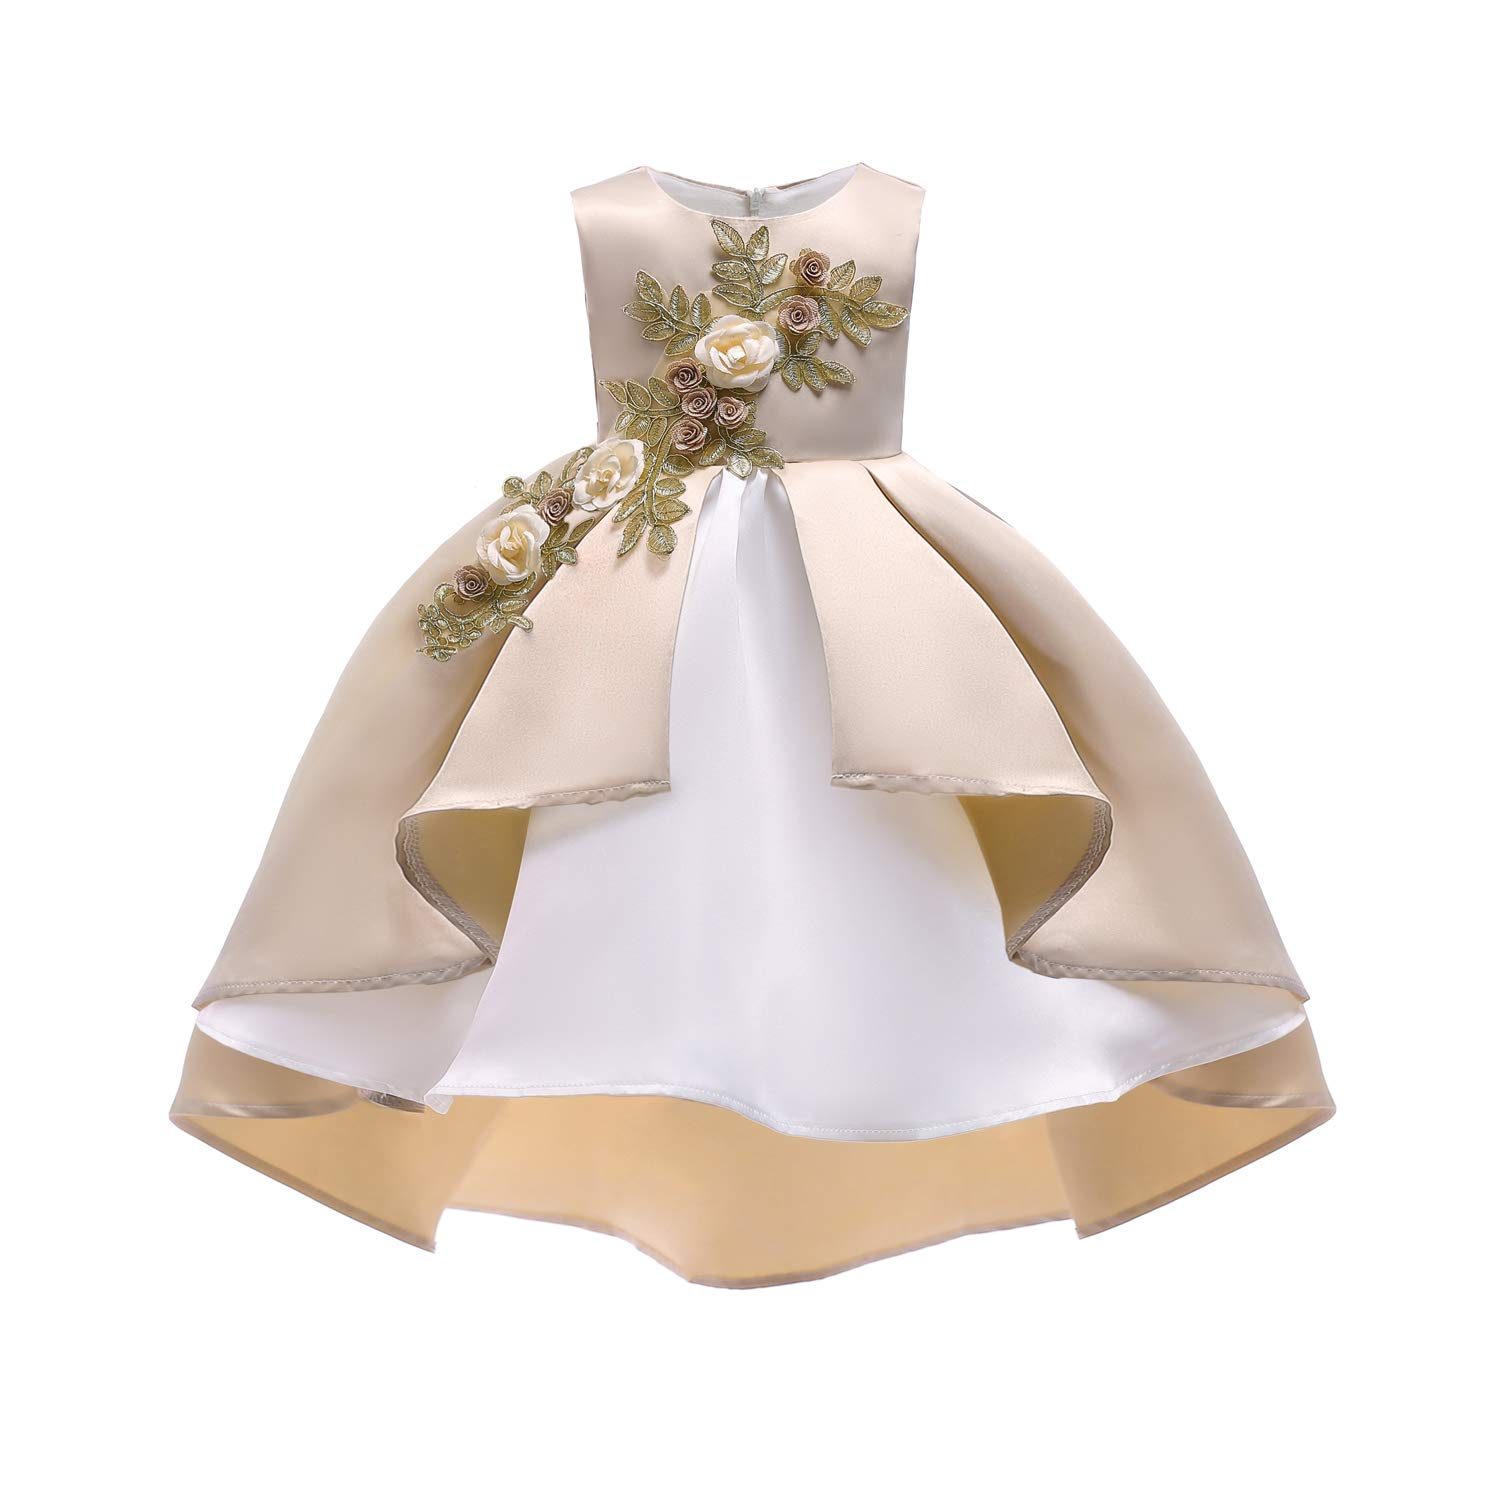 bd33ae7d84a Amazon.com  AIMJCHLD 2-9 Years Flower Girls Dress Wedding Bridesmaid Formal  Midi Dresses  Clothing